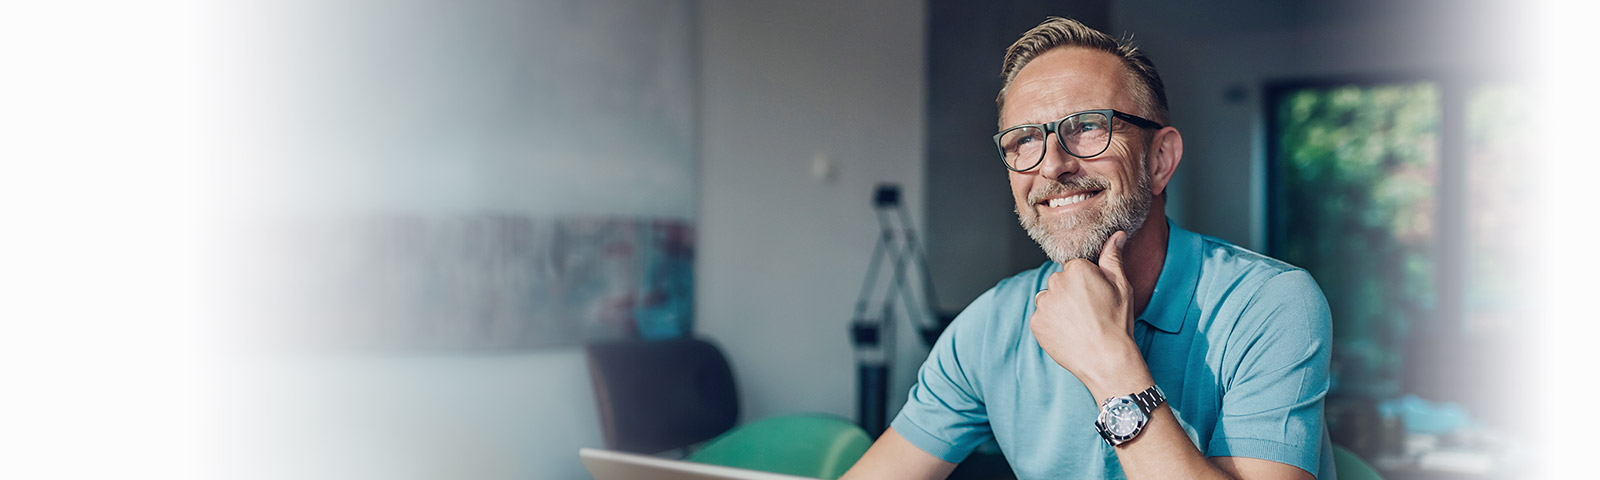 man with glasses smiling using computer